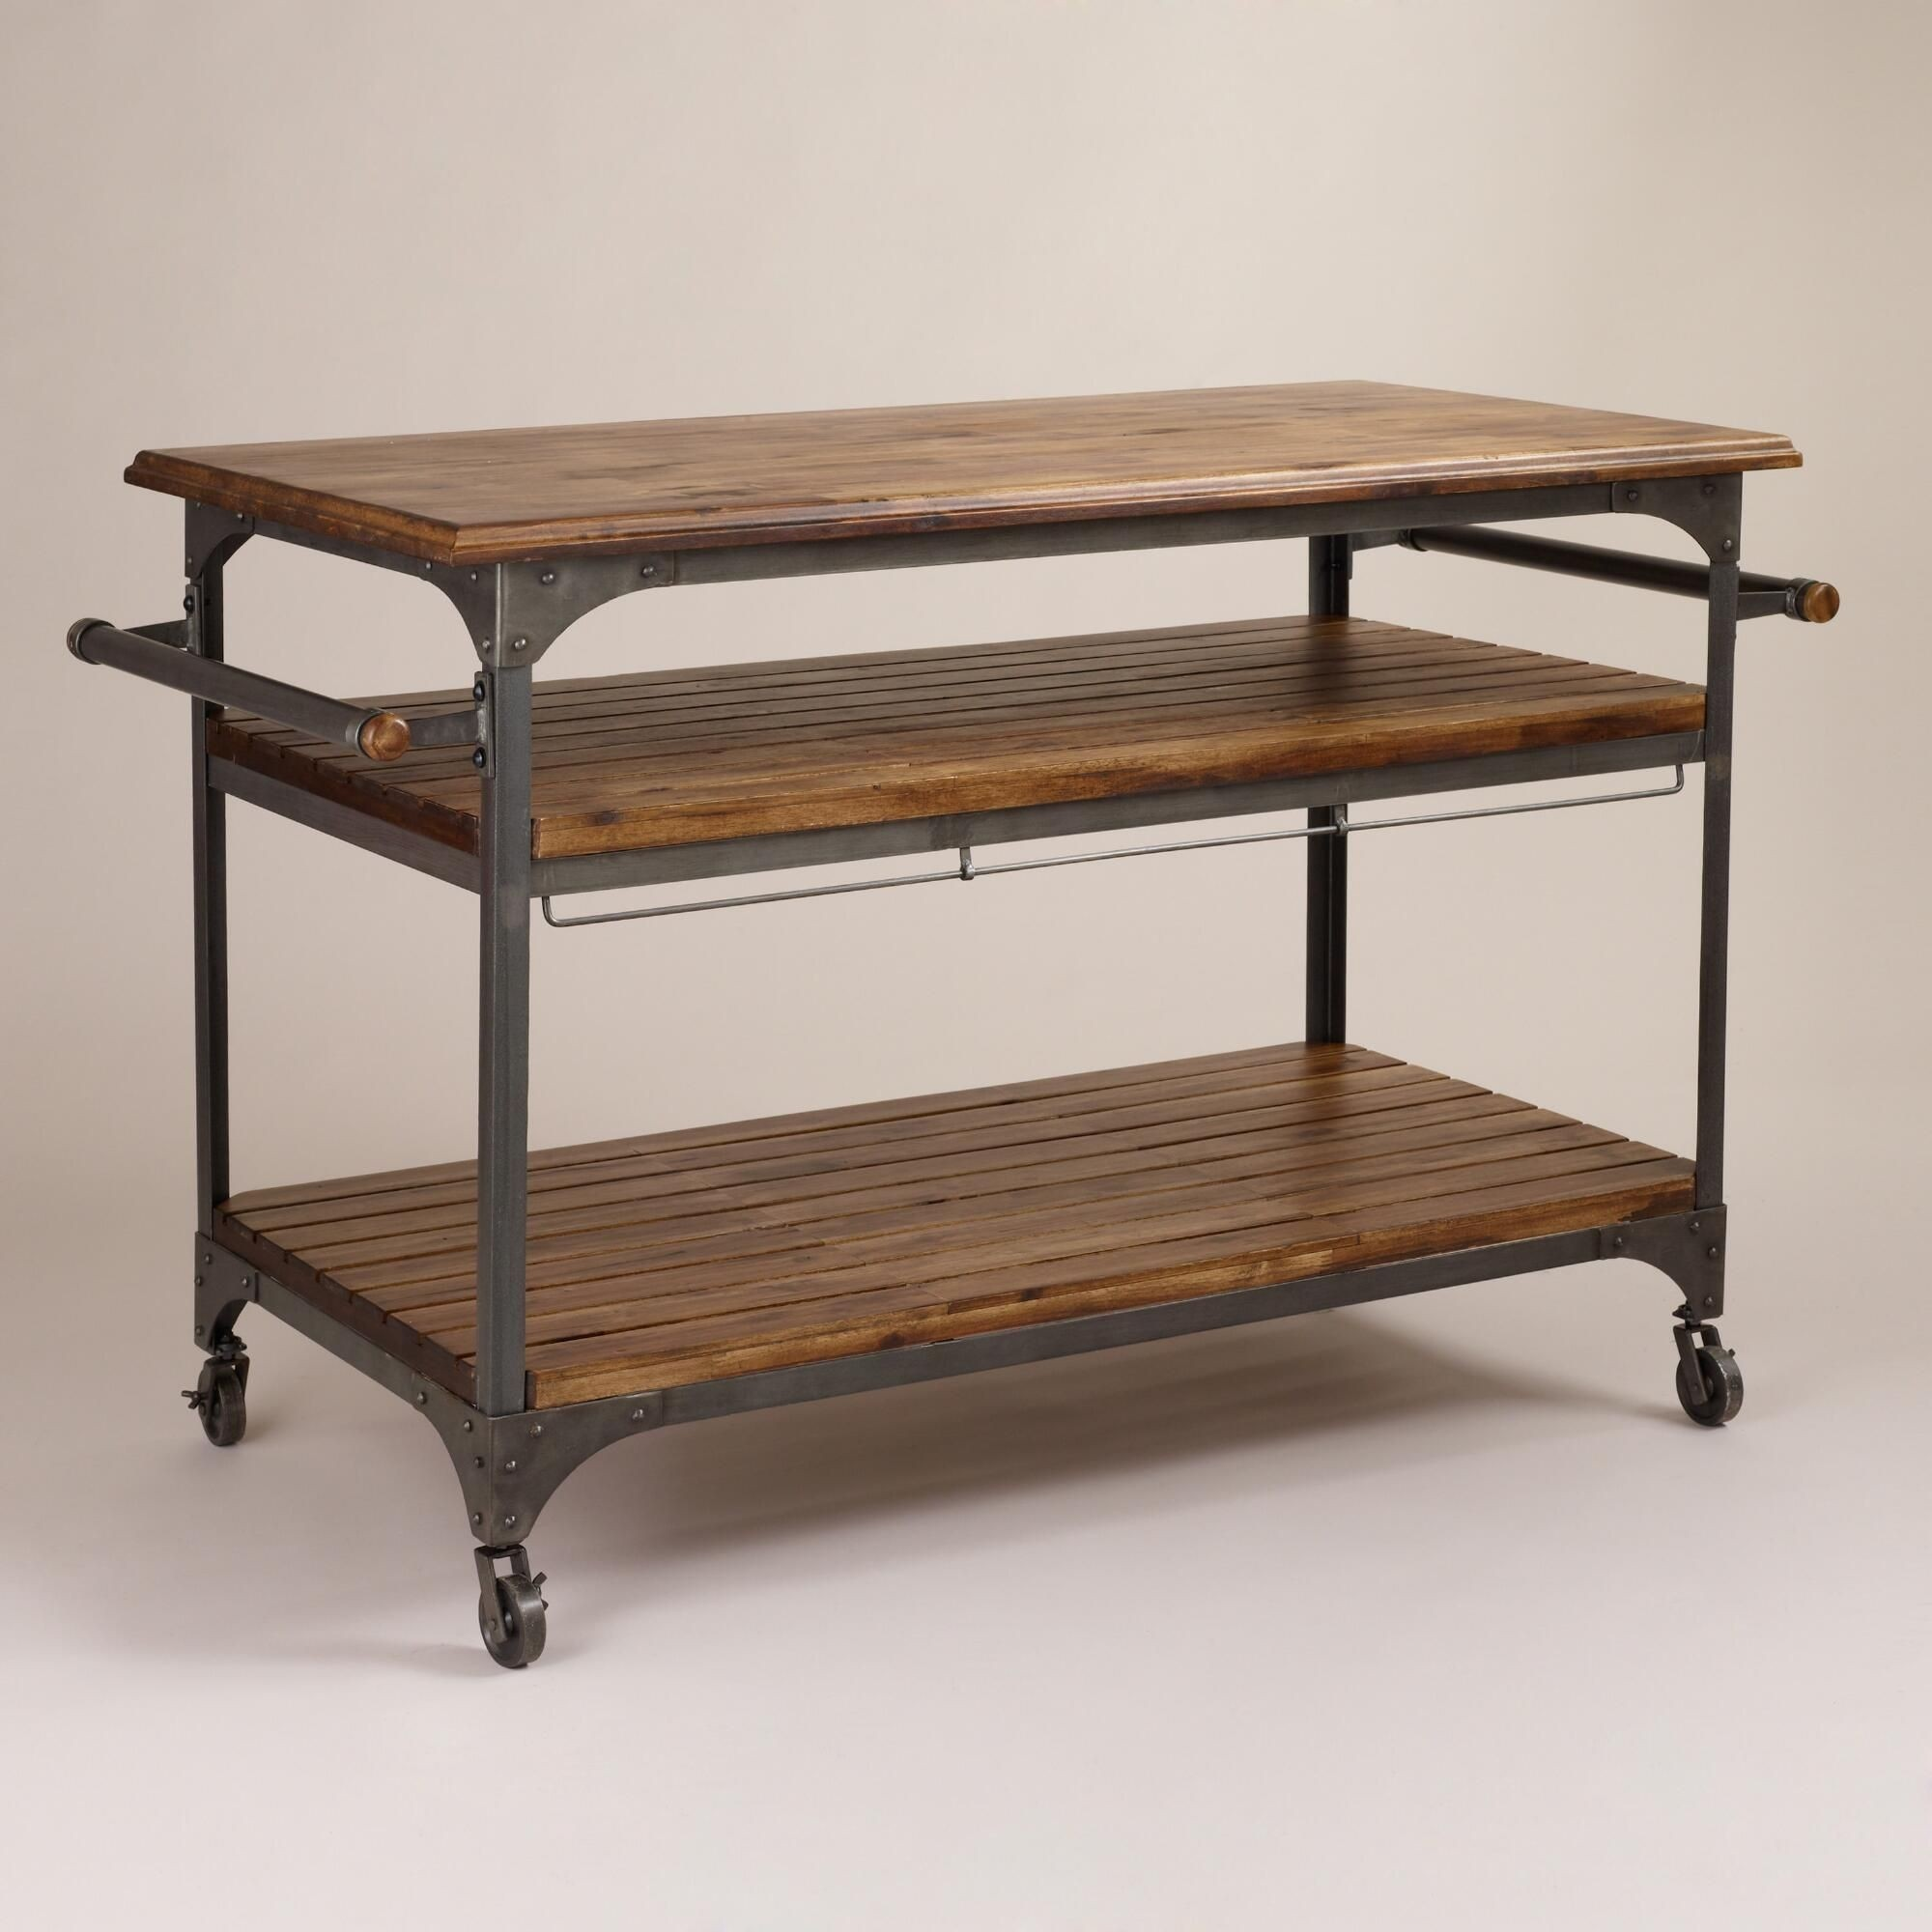 Wooden Kitchen Cart Island Utility Serving Rolling Cart w ...